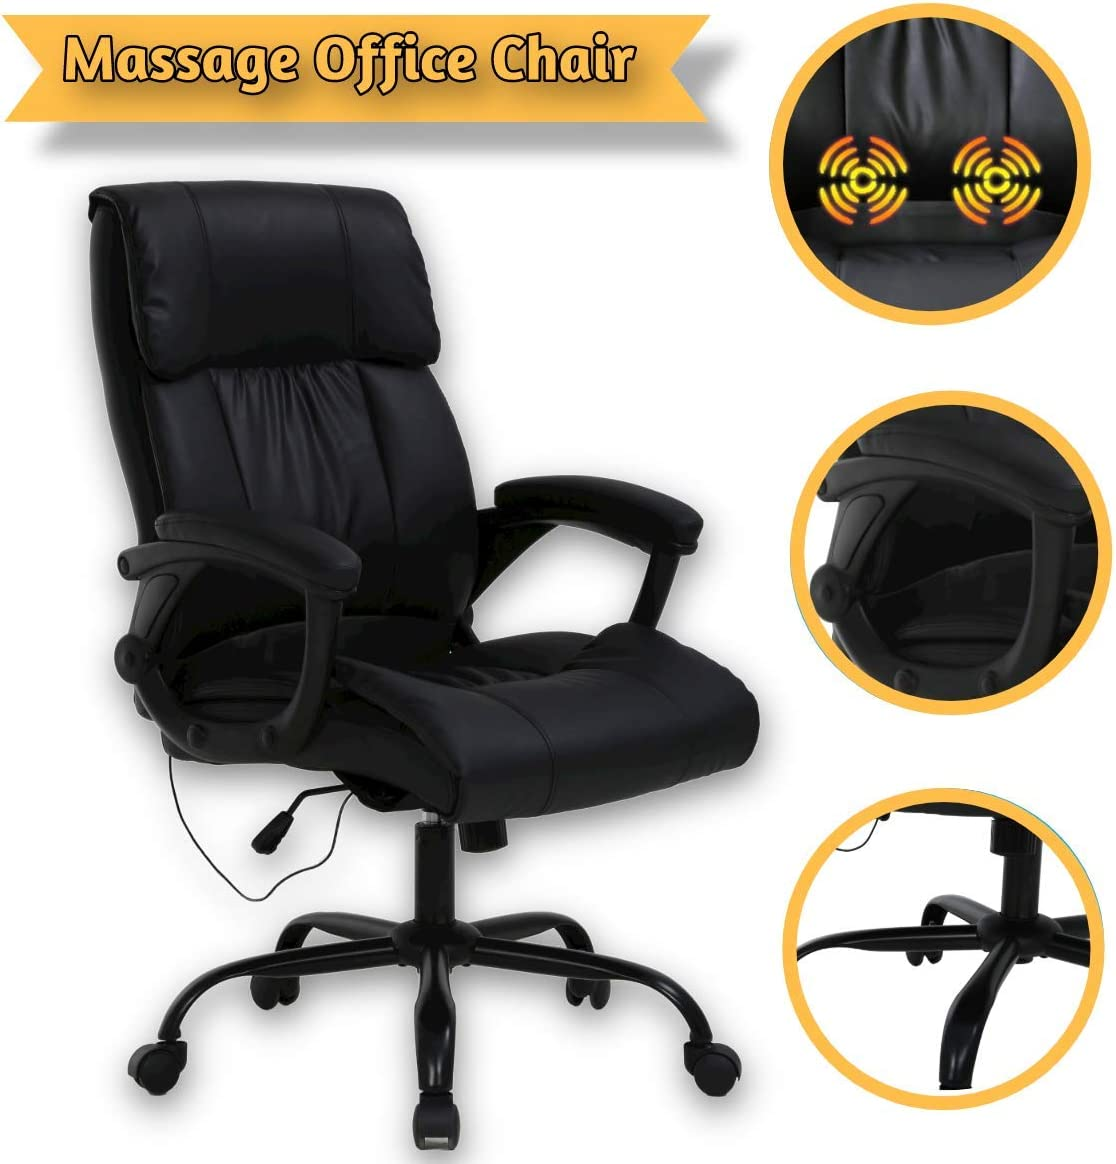 Massage Office Chair 250lbs Ergonomic High Back Pu Leather Rolling Swivel Executive Computer Desk Chair With Lumbar Support Headrest Armrest For Study Home Meeting Room Home Kitchen Home Office Furniture Fcteutonia05 De